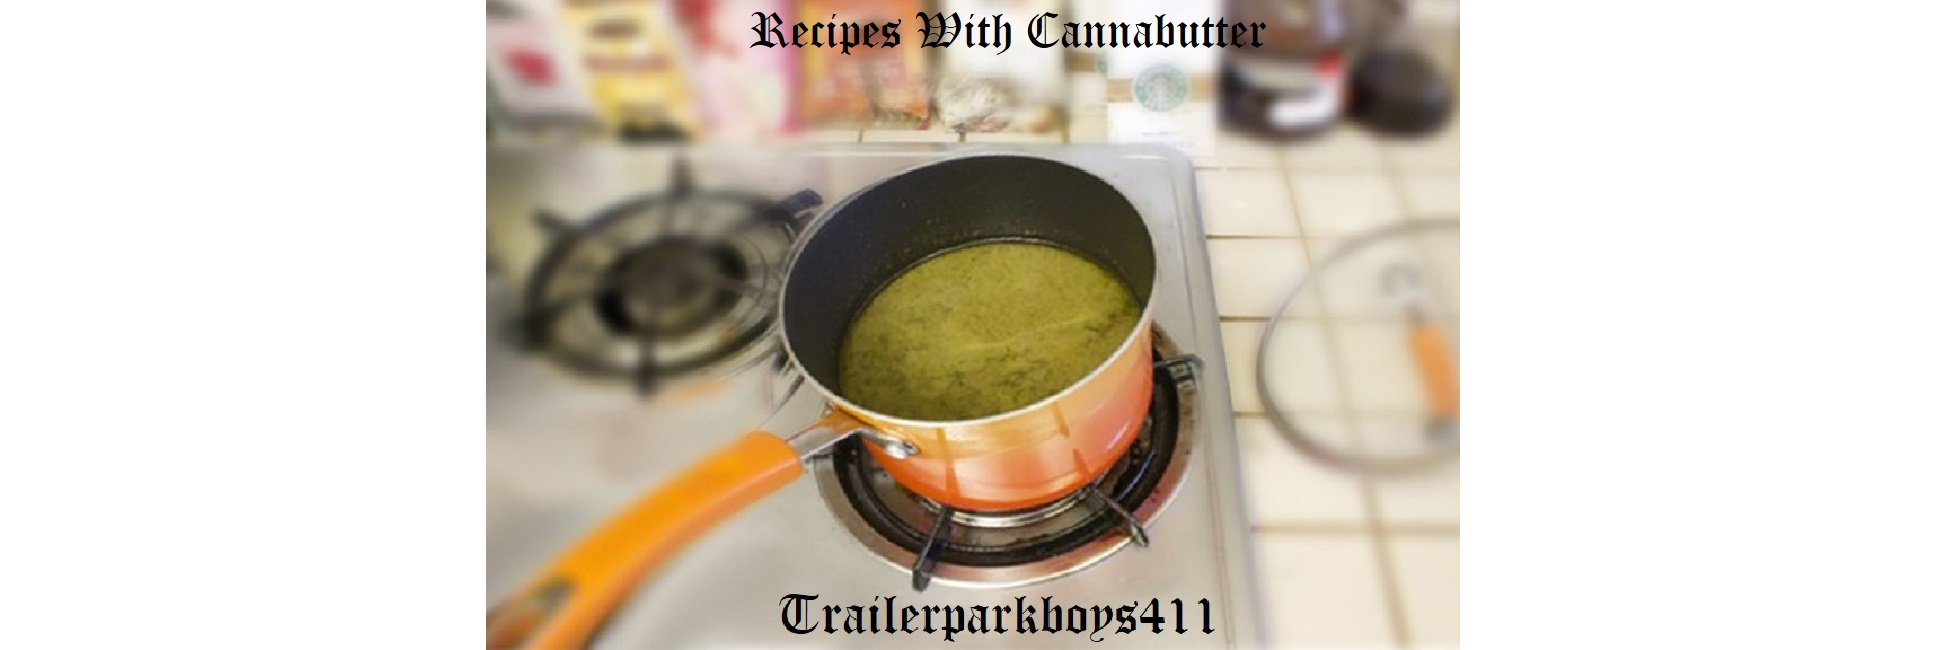 Recipes with cannabutter